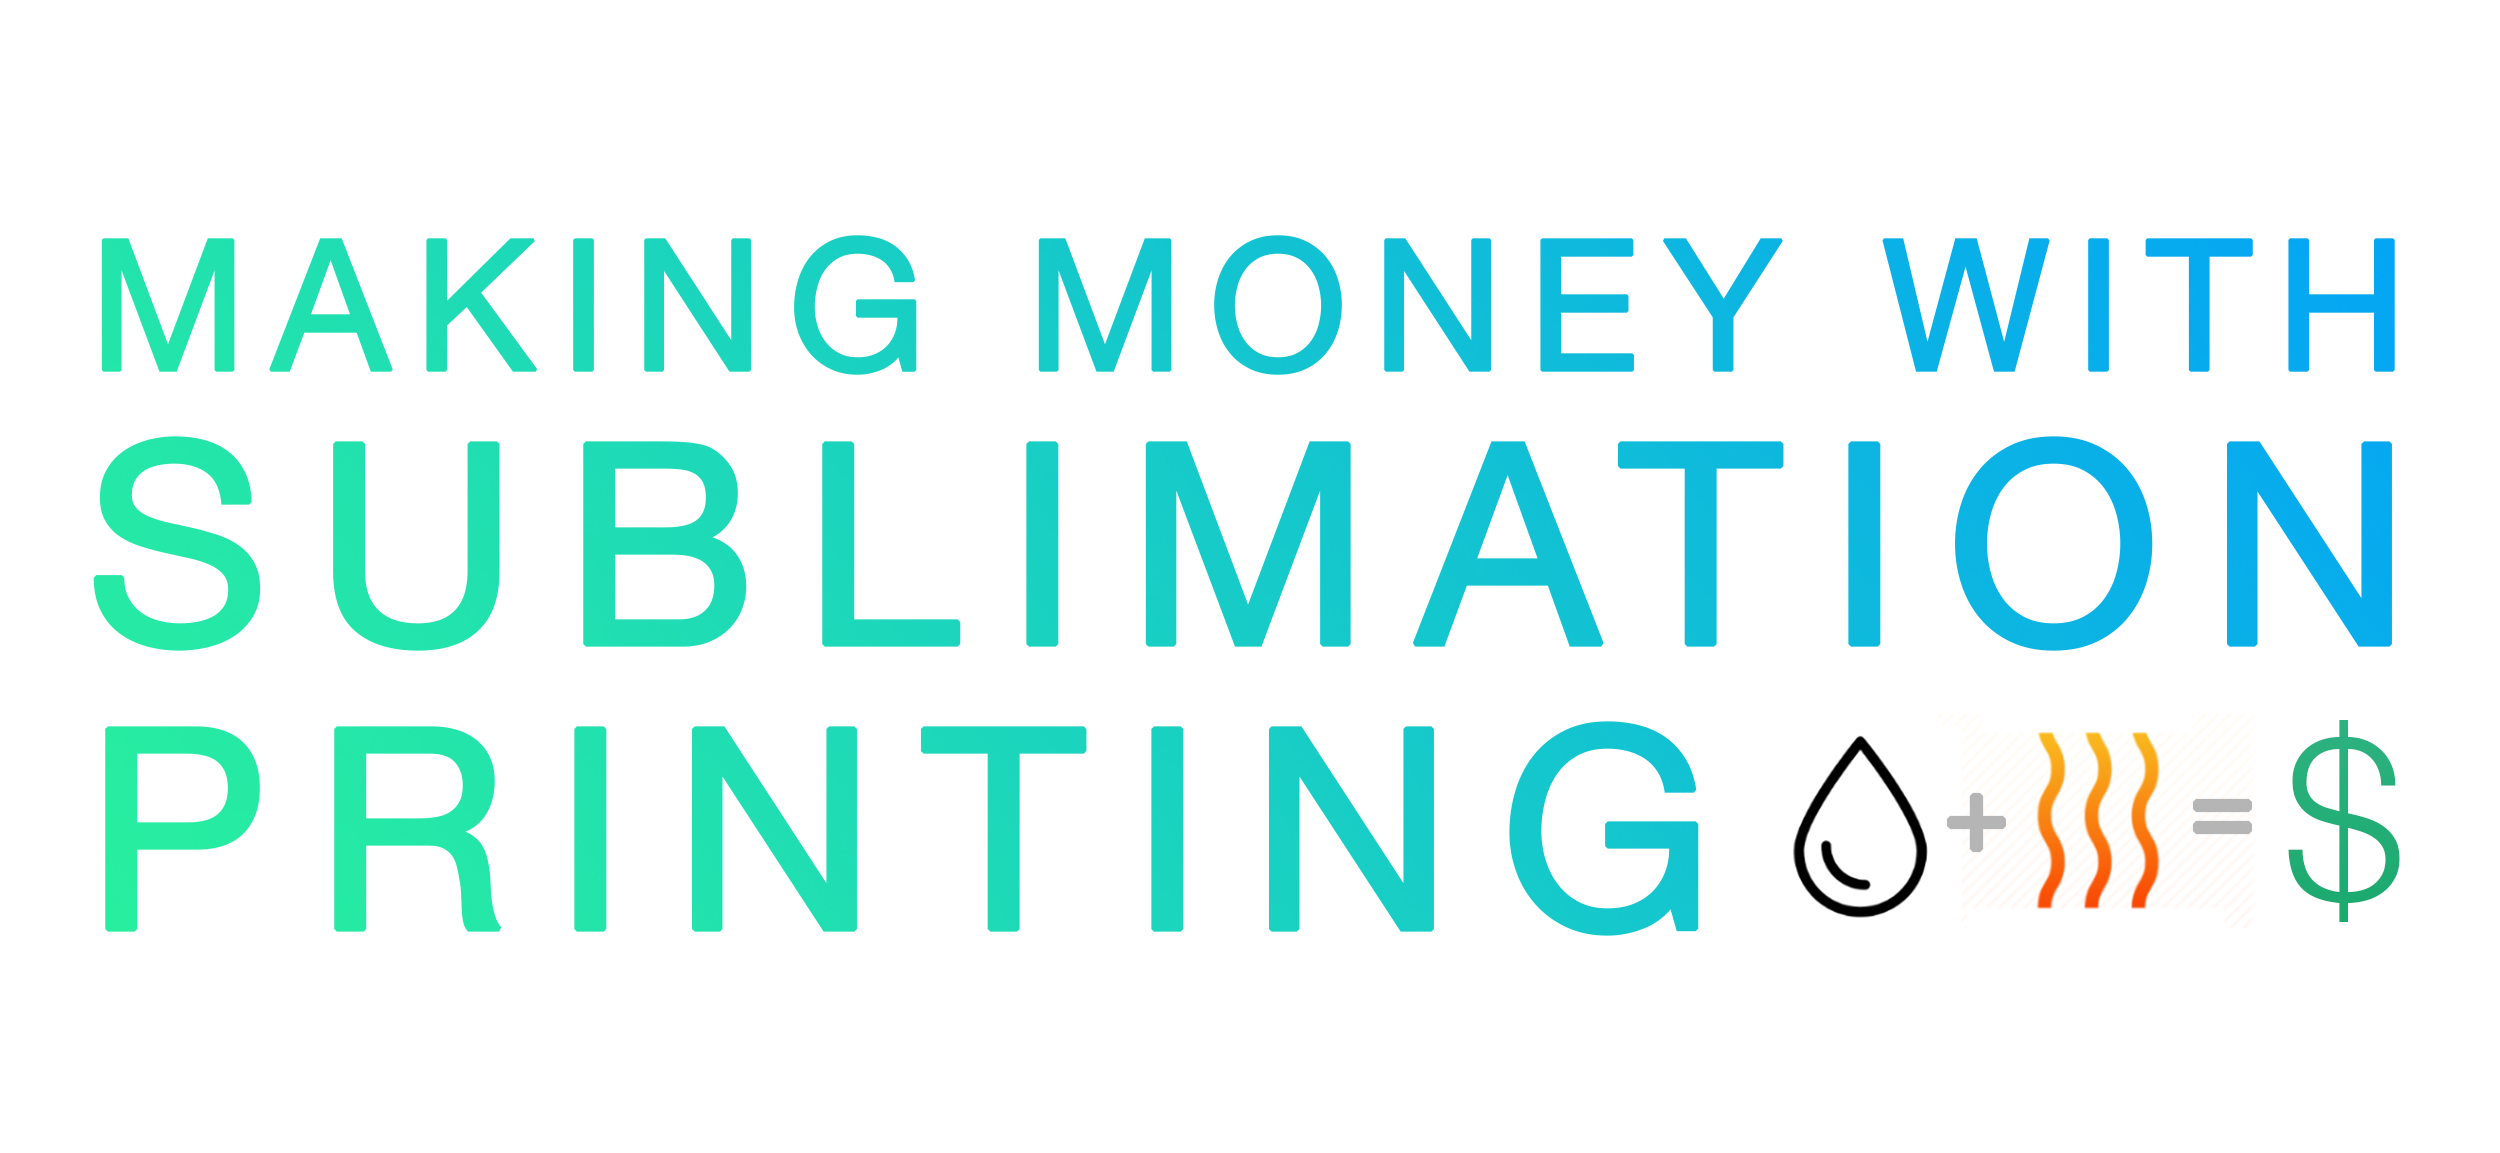 Making Money With Sublimation Printing By Mike Mcbrien Medium